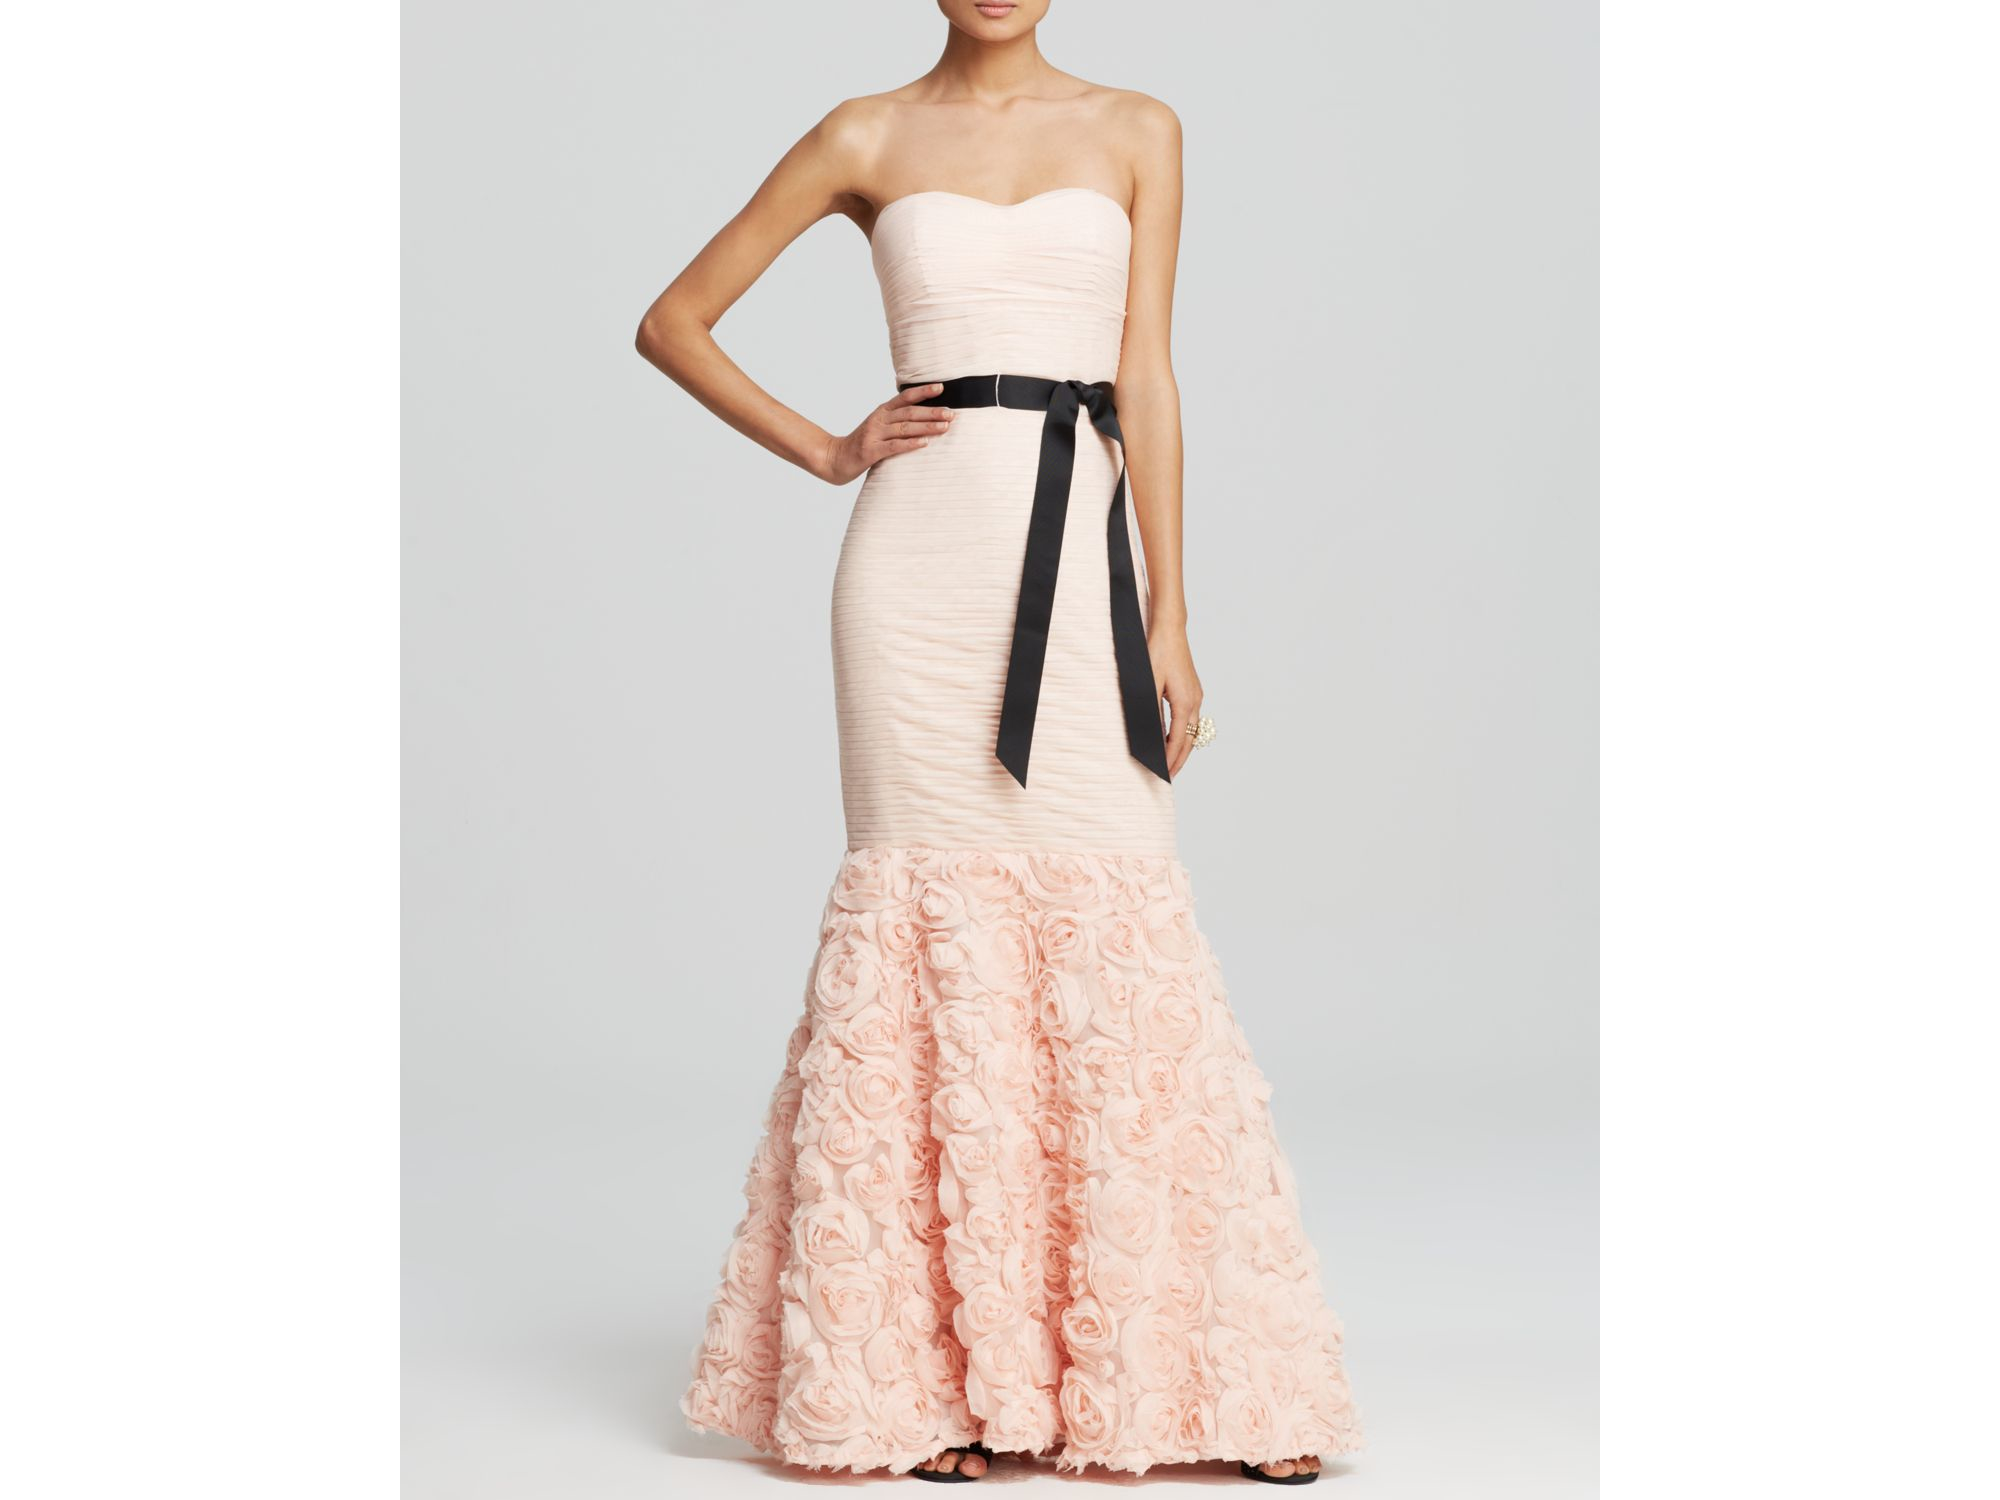 Lyst - Js Collections Gown - Strapless Mermaid in Pink